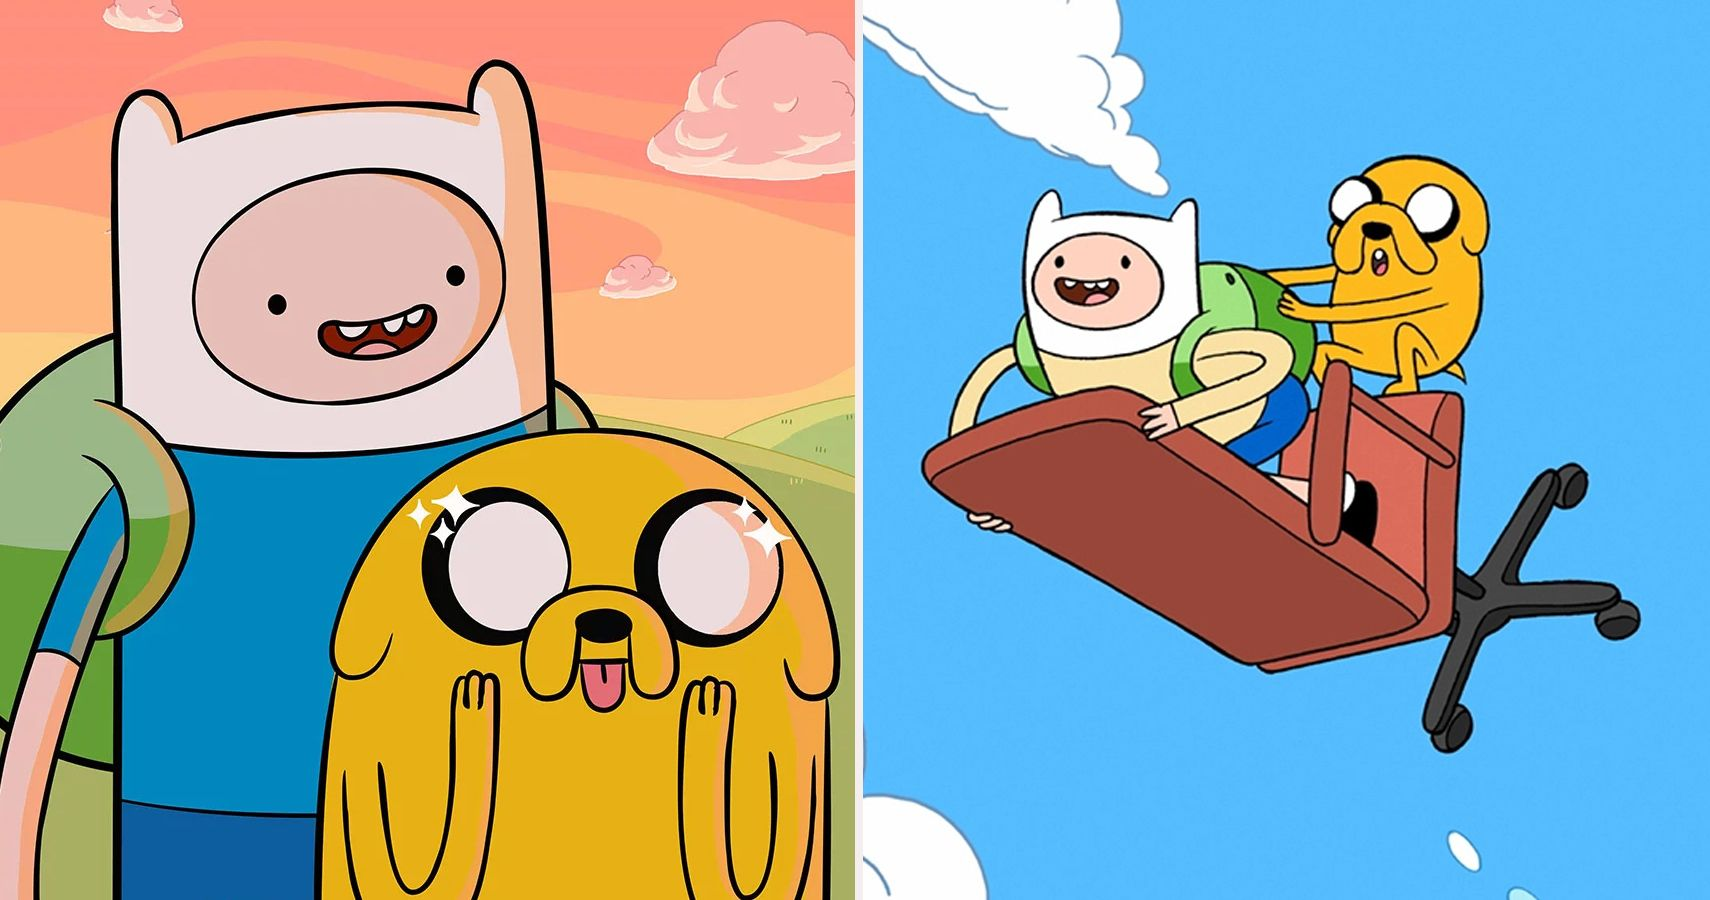 10 Best Episodes Of Adventure Time According To Imdb Cbr